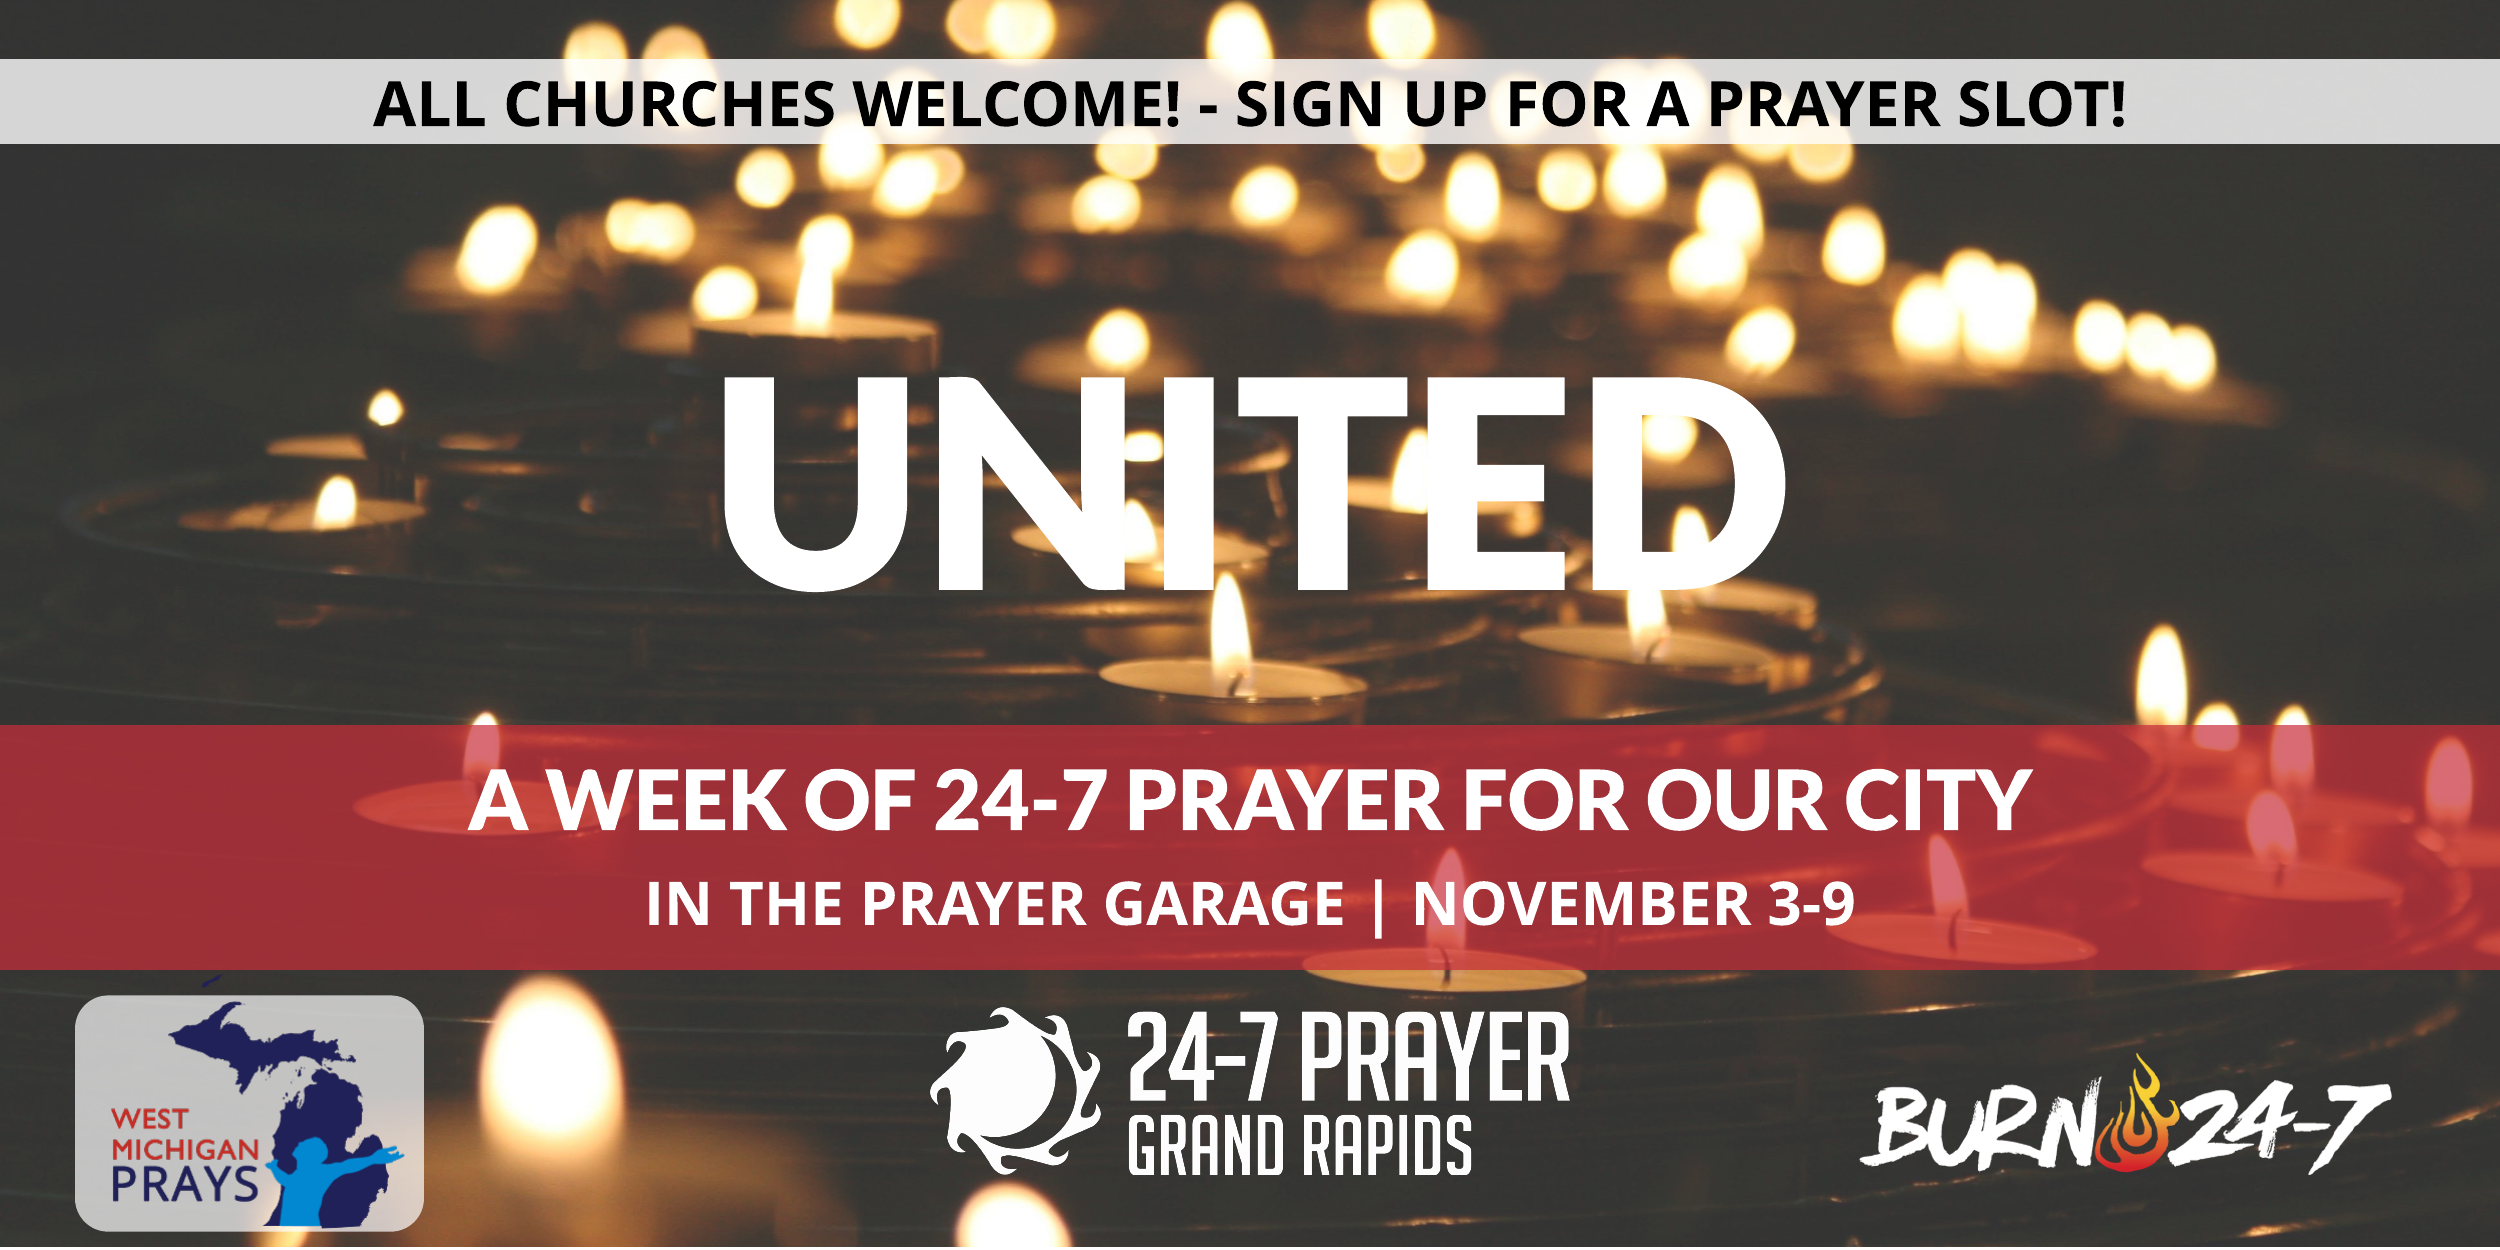 CLICK THE IMAGE above to sign up with the ONLINE PRAYER SIGNUP